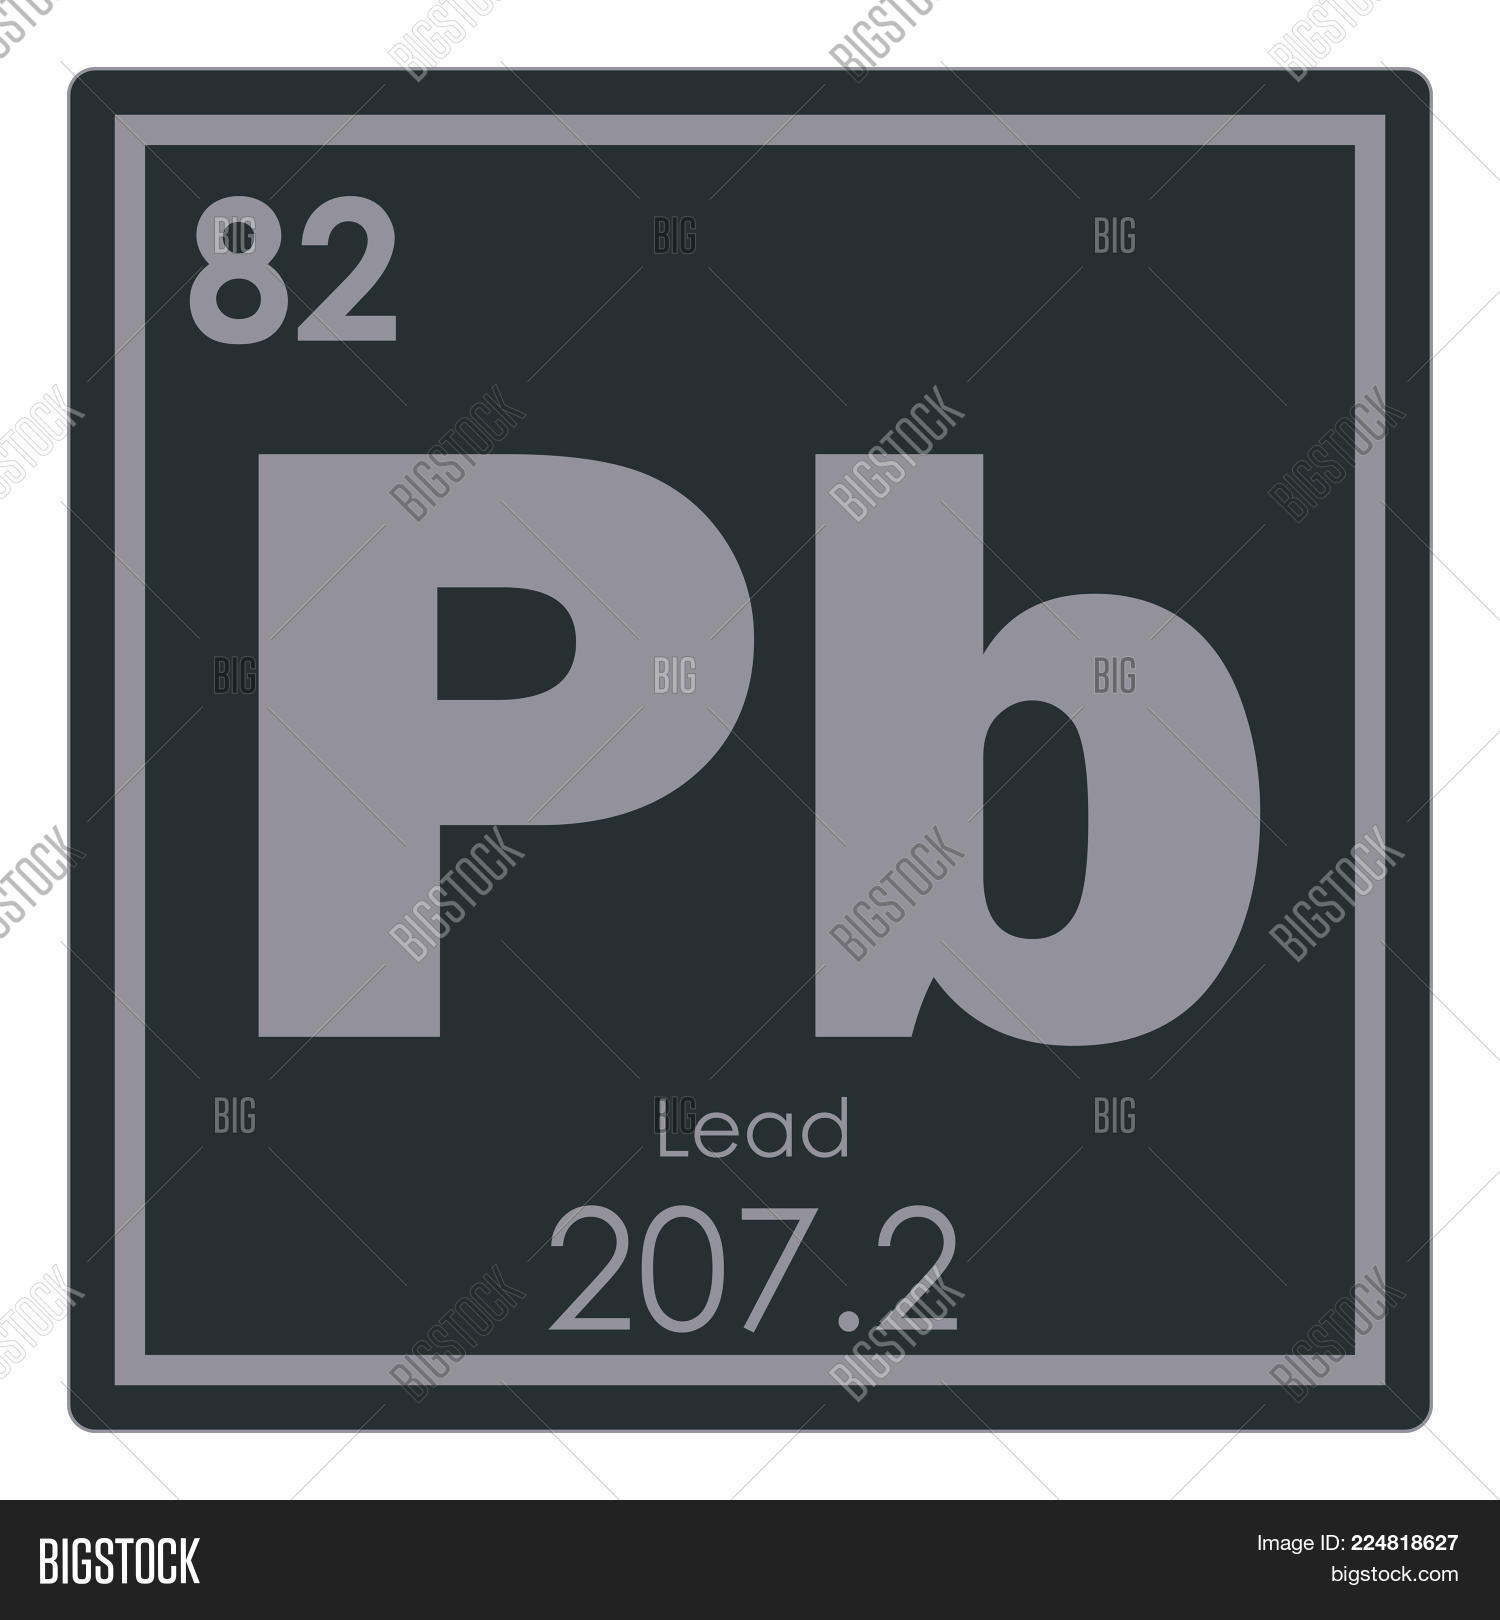 Lead Chemical Element Image Photo Free Trial Bigstock